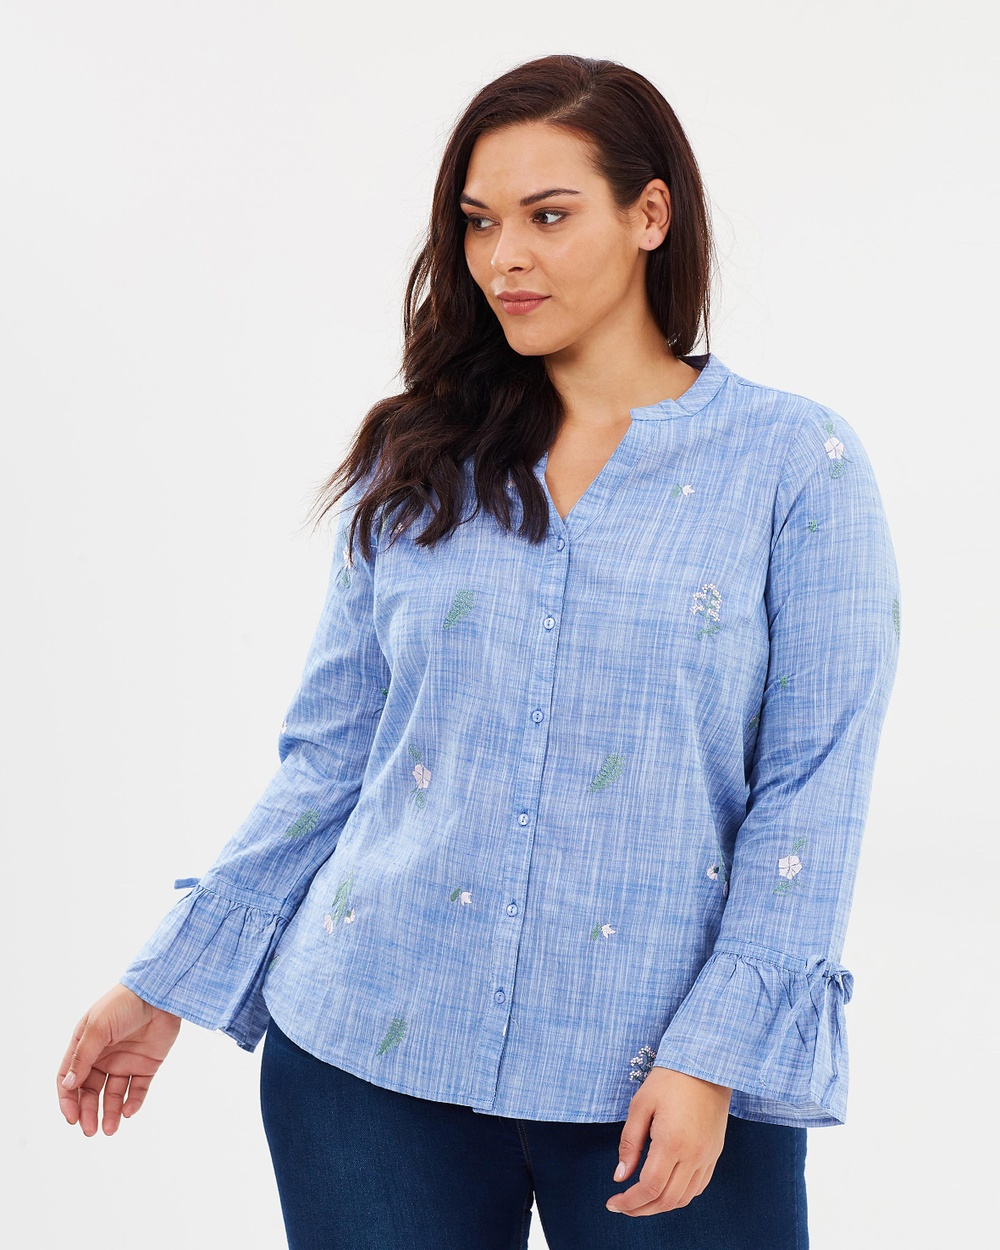 EVANS Chambray Embroidered Shirt Tops Blue Chambray Embroidered Shirt